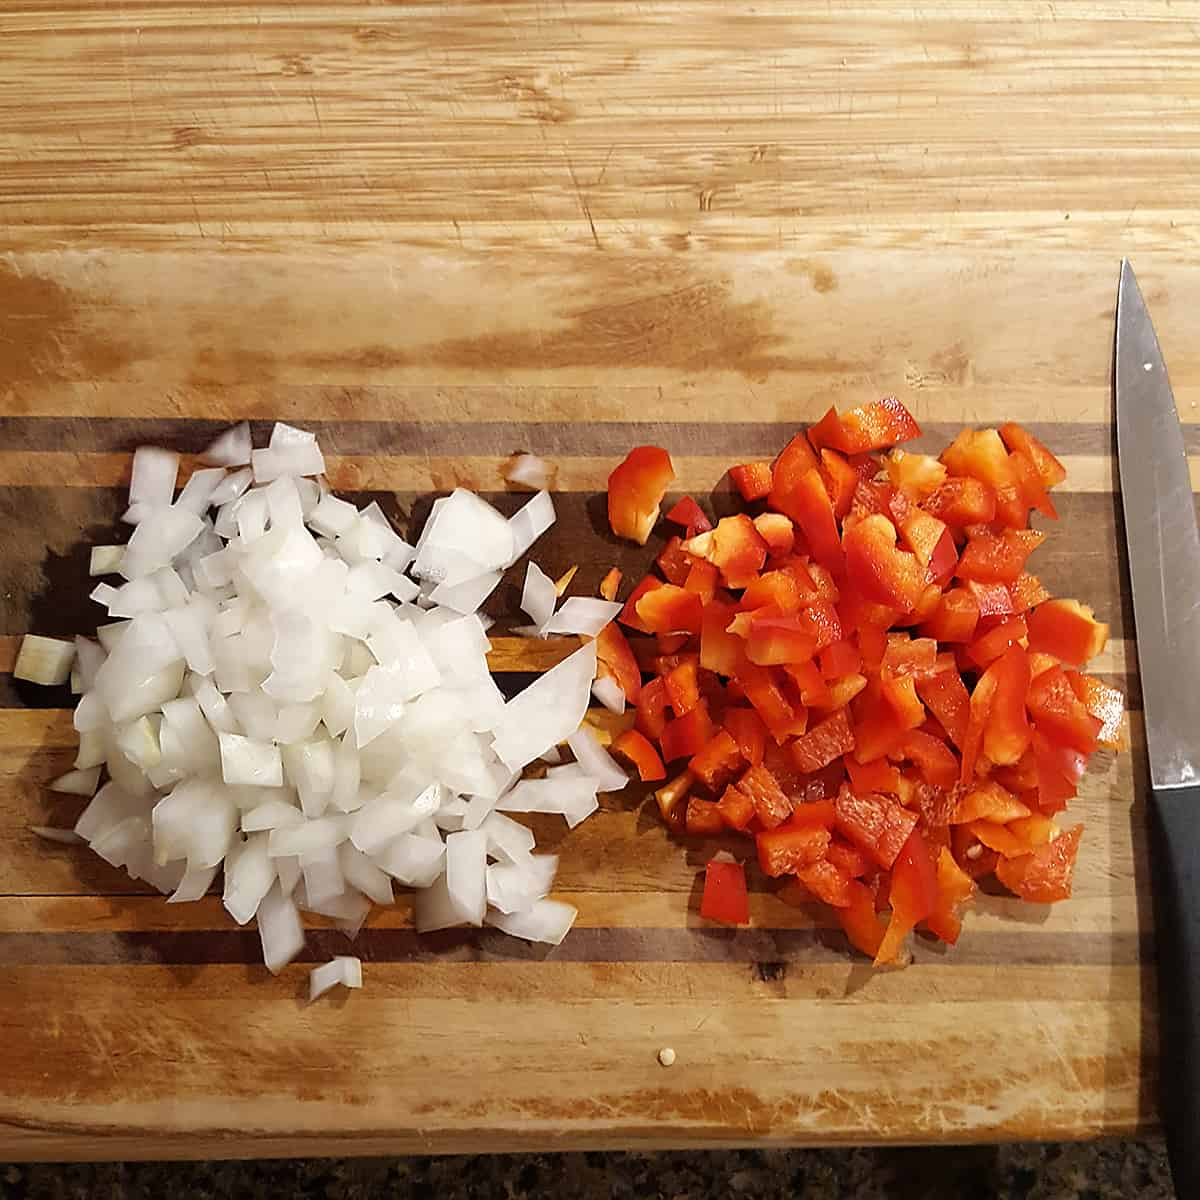 Diced onions and peppers on a cutting board